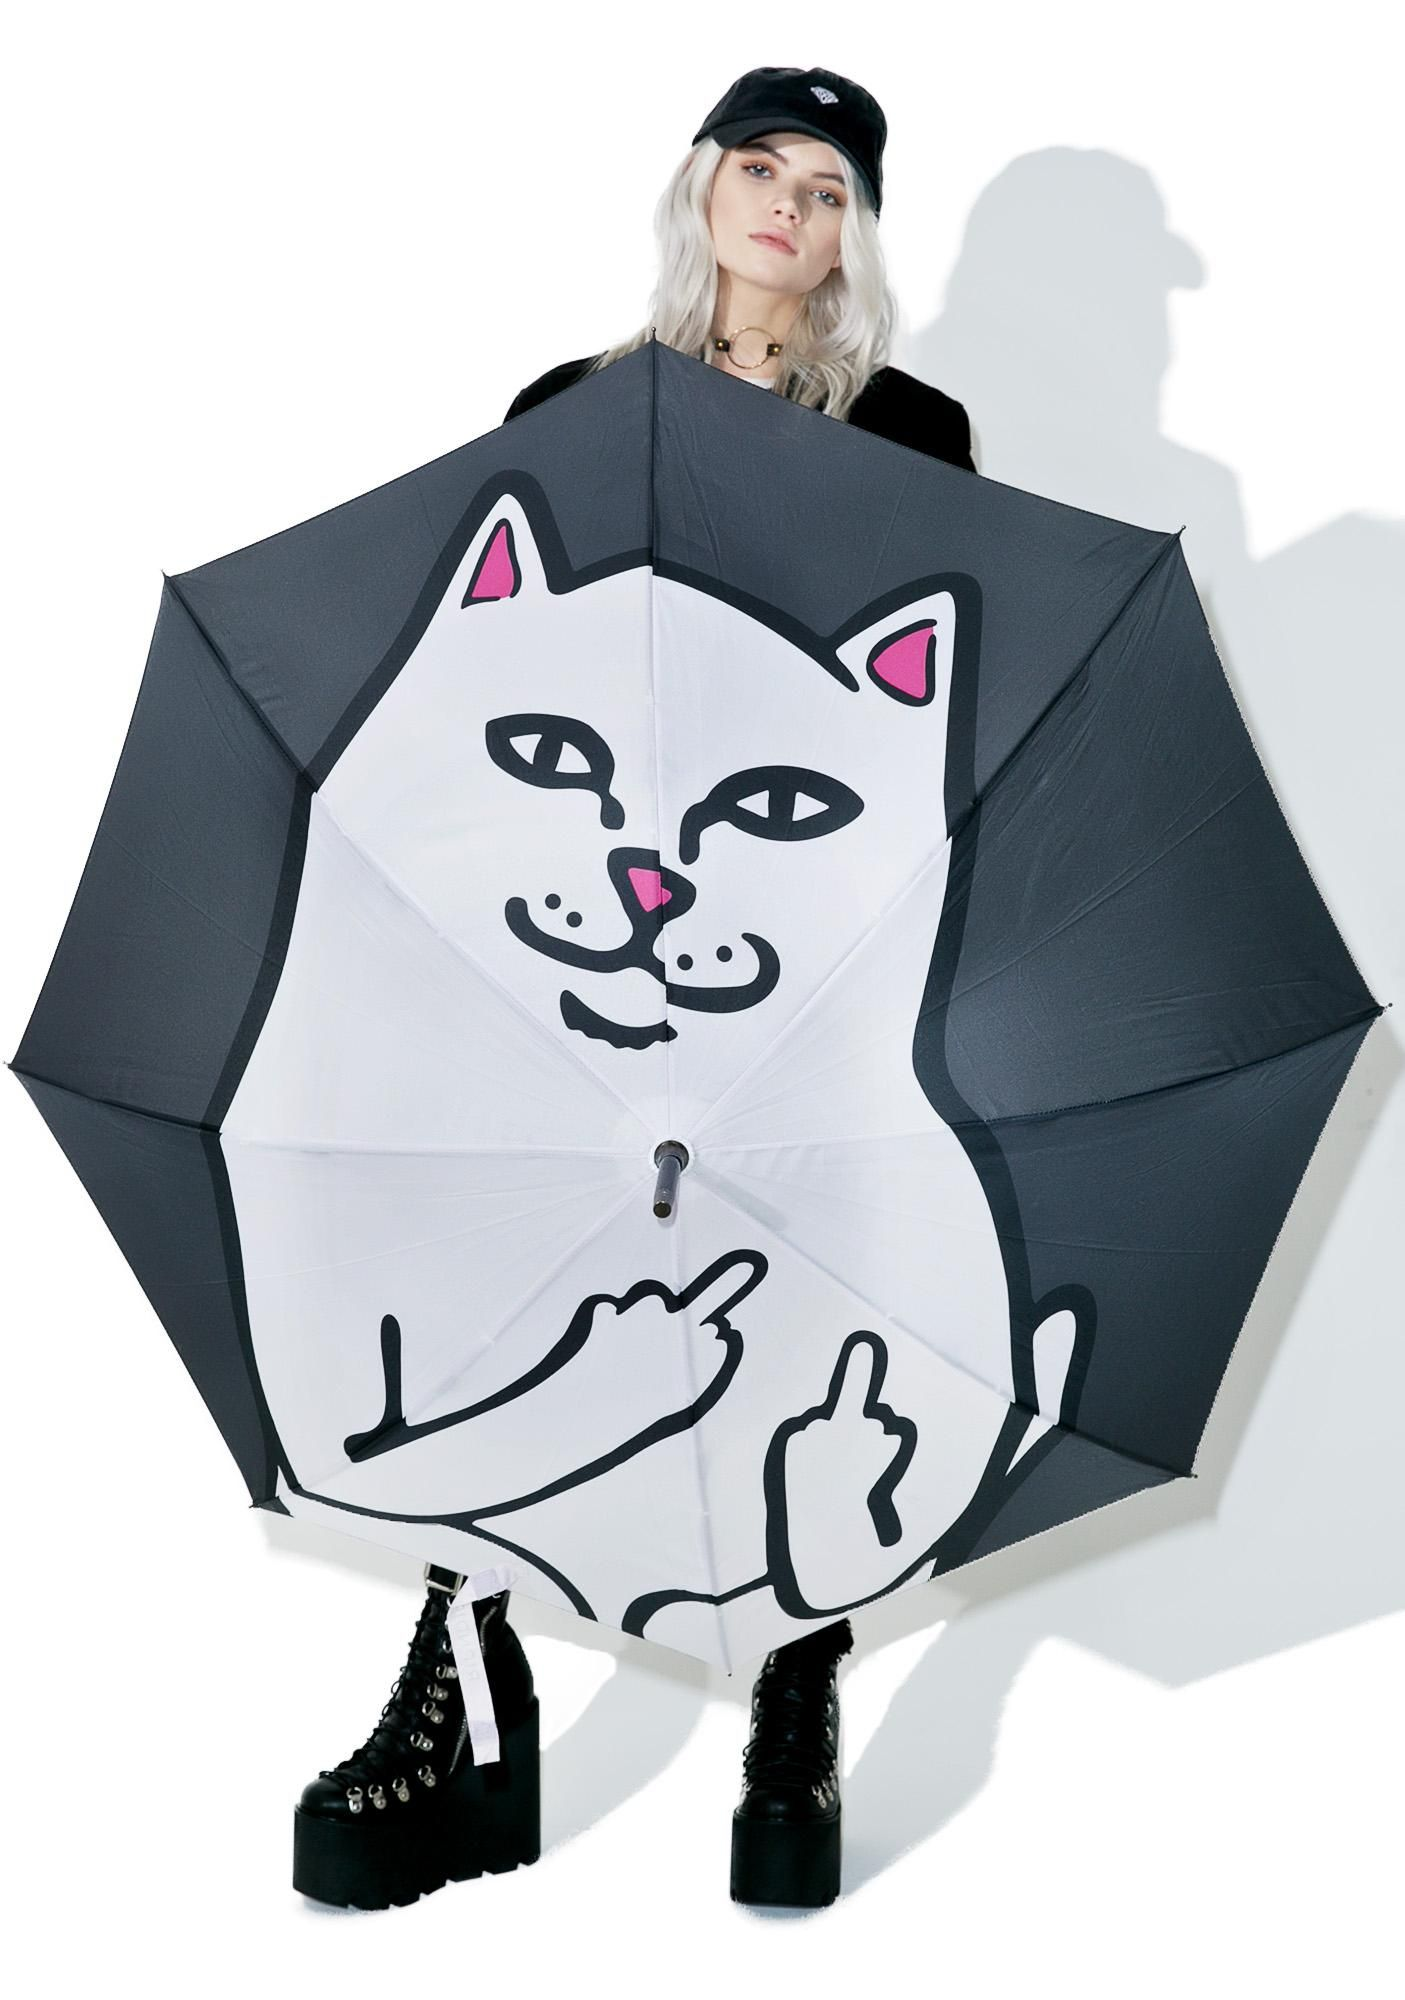 7798efc1756 RIPNDIP Lord Nermal Umbrella ...stay dry with the cutest cat watchin  over  ya. This automatic umbrella features a dope huge Nermal print and a sturdy  wooden ...